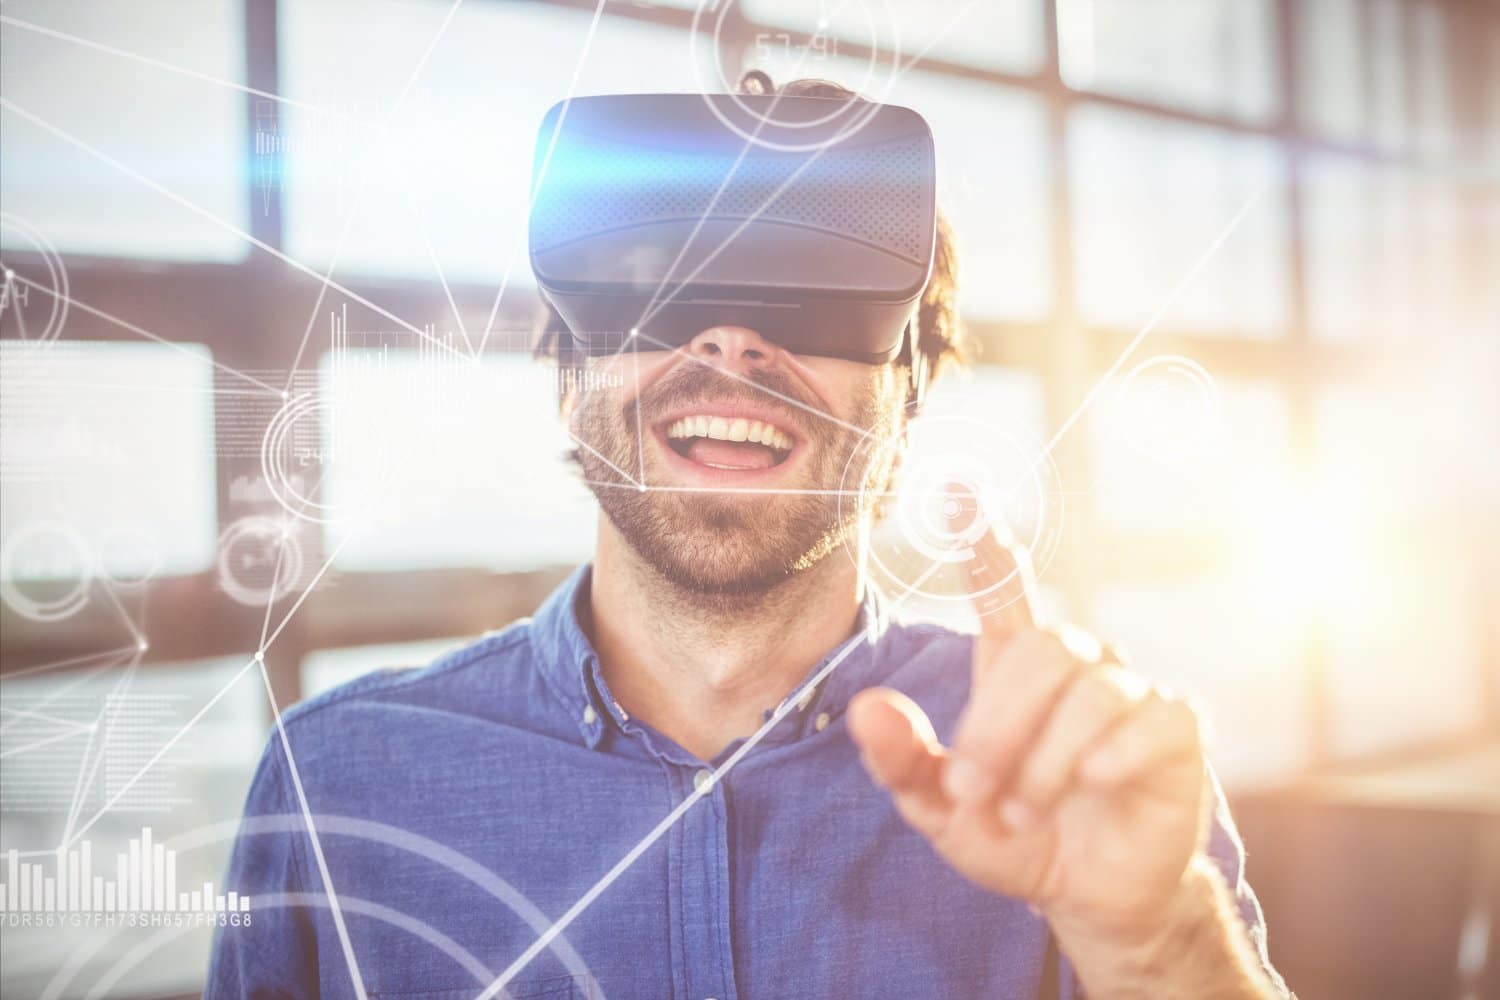 Digital transformation: VR and AR will revolutionise the office